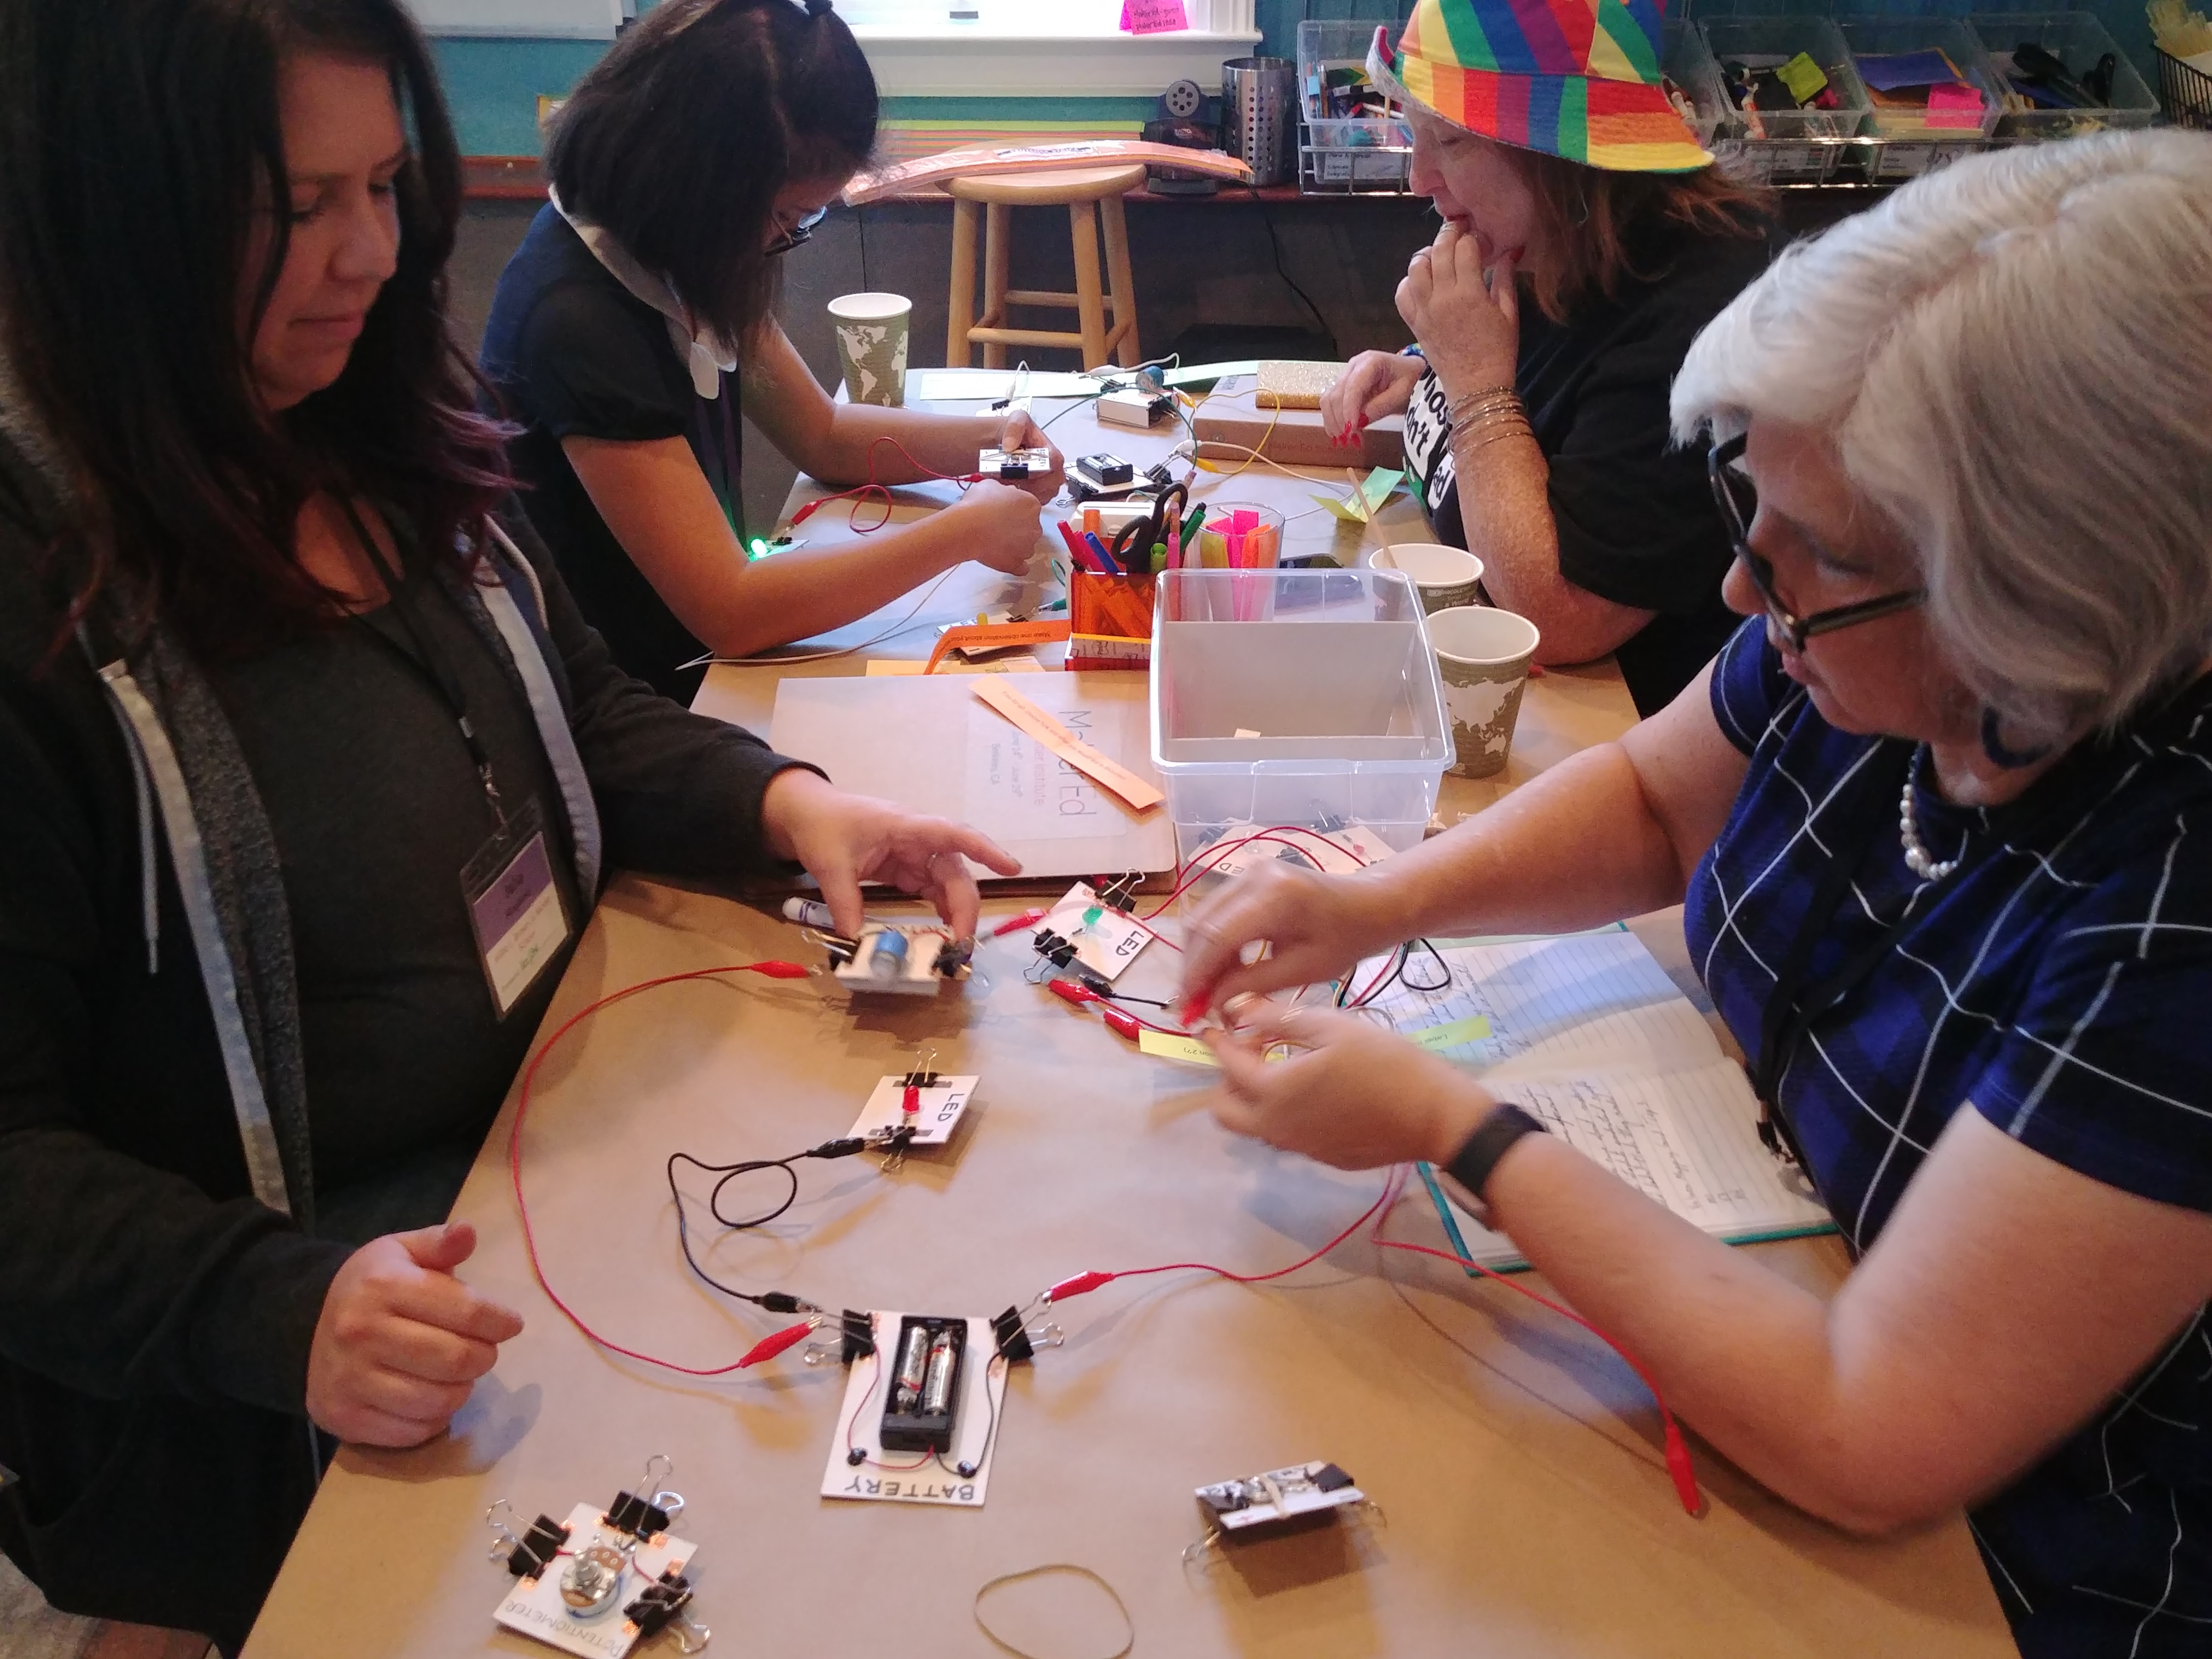 A group of educators 4 experiments with circuit blocks in pairs